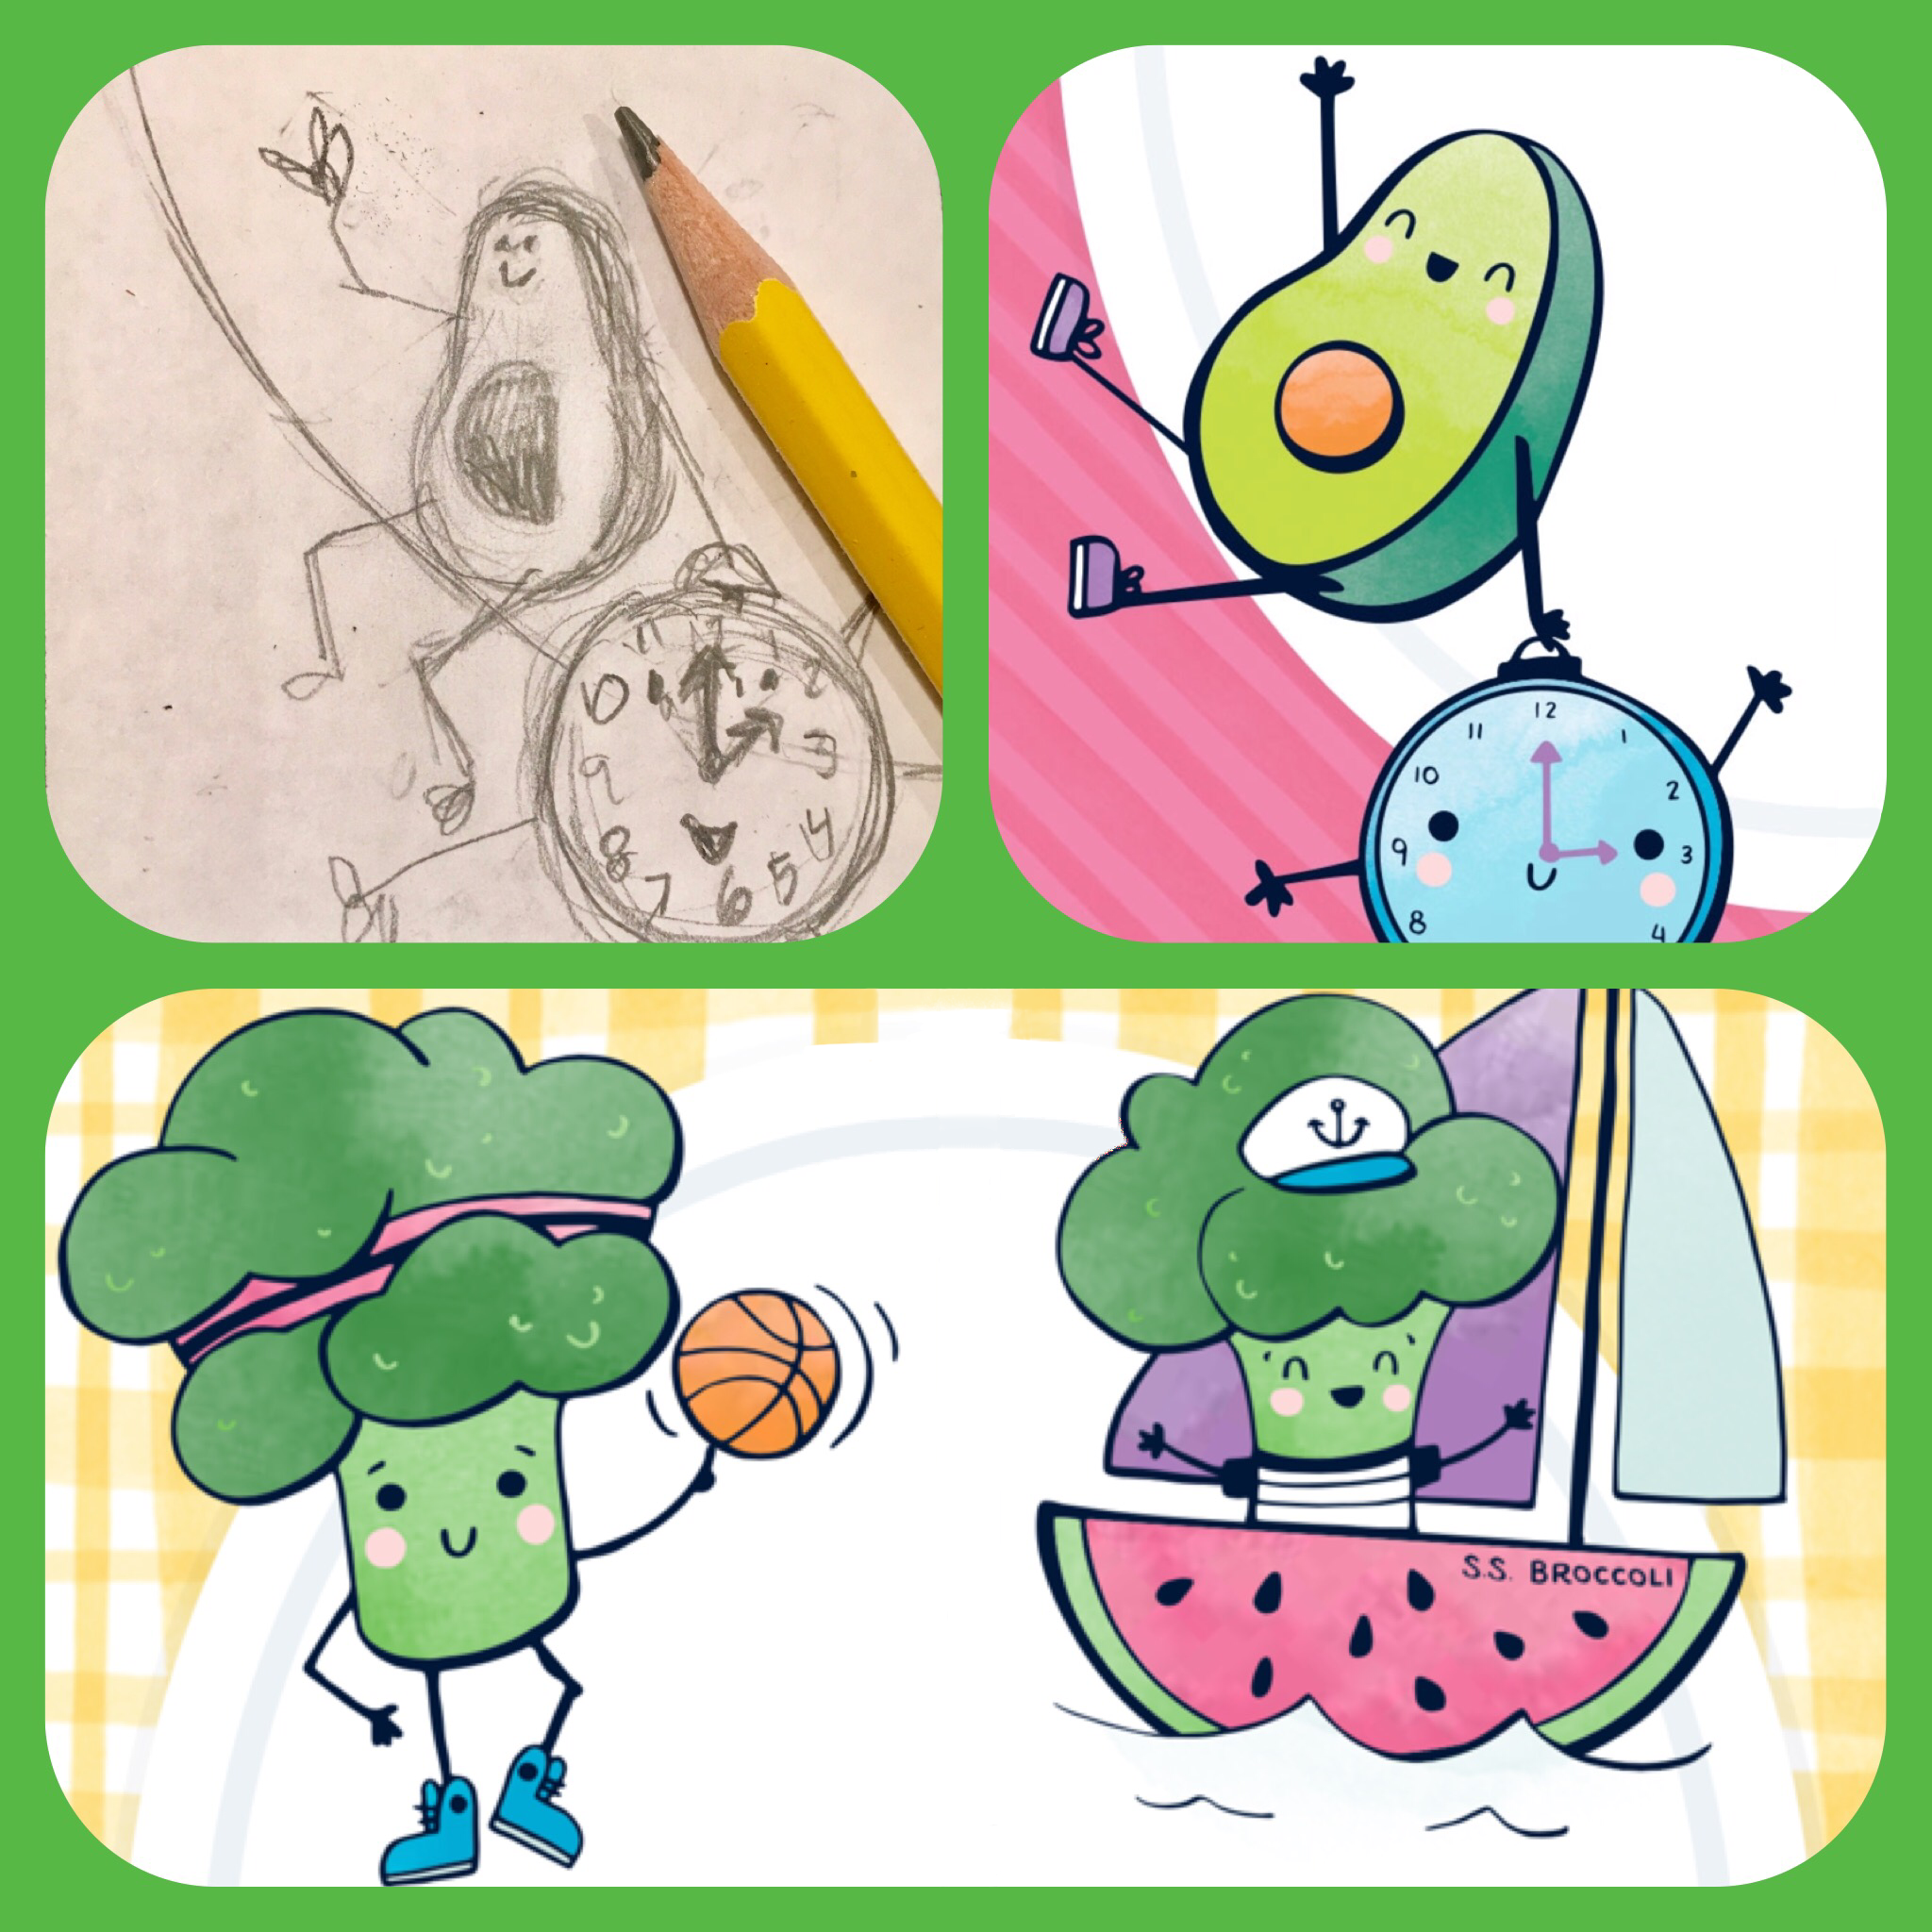 2048x2048 Picnic Party! Game Design For Fun With Healthy Food Characters